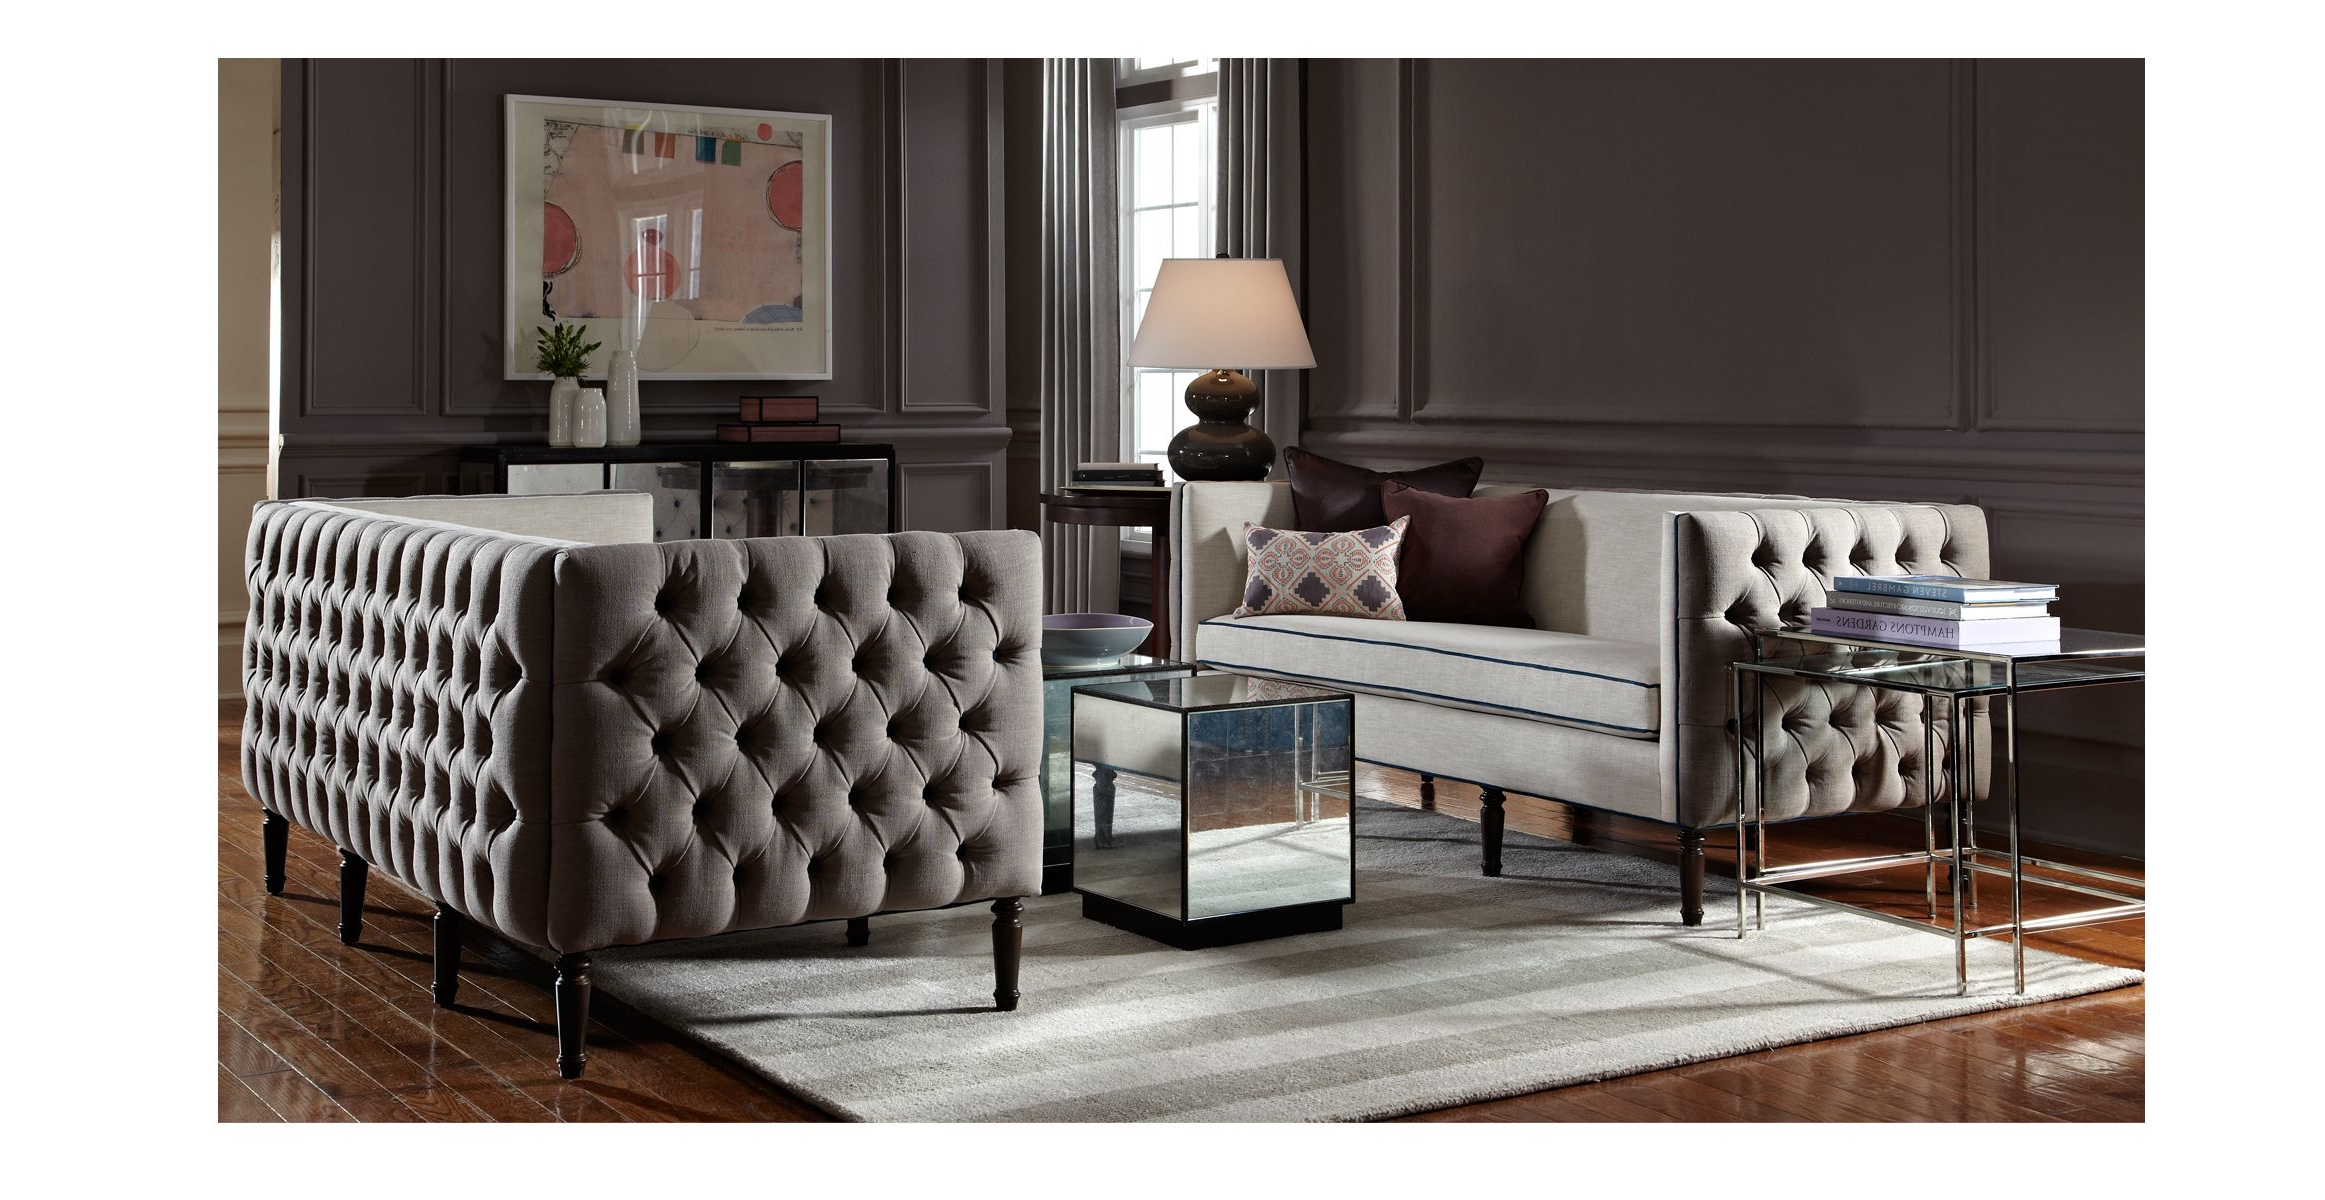 Modern Tufted Sofa – Google Search | Turn Of The Century Moderne For Parsons Travertine Top & Stainless Steel Base 48x16 Console Tables (View 7 of 15)